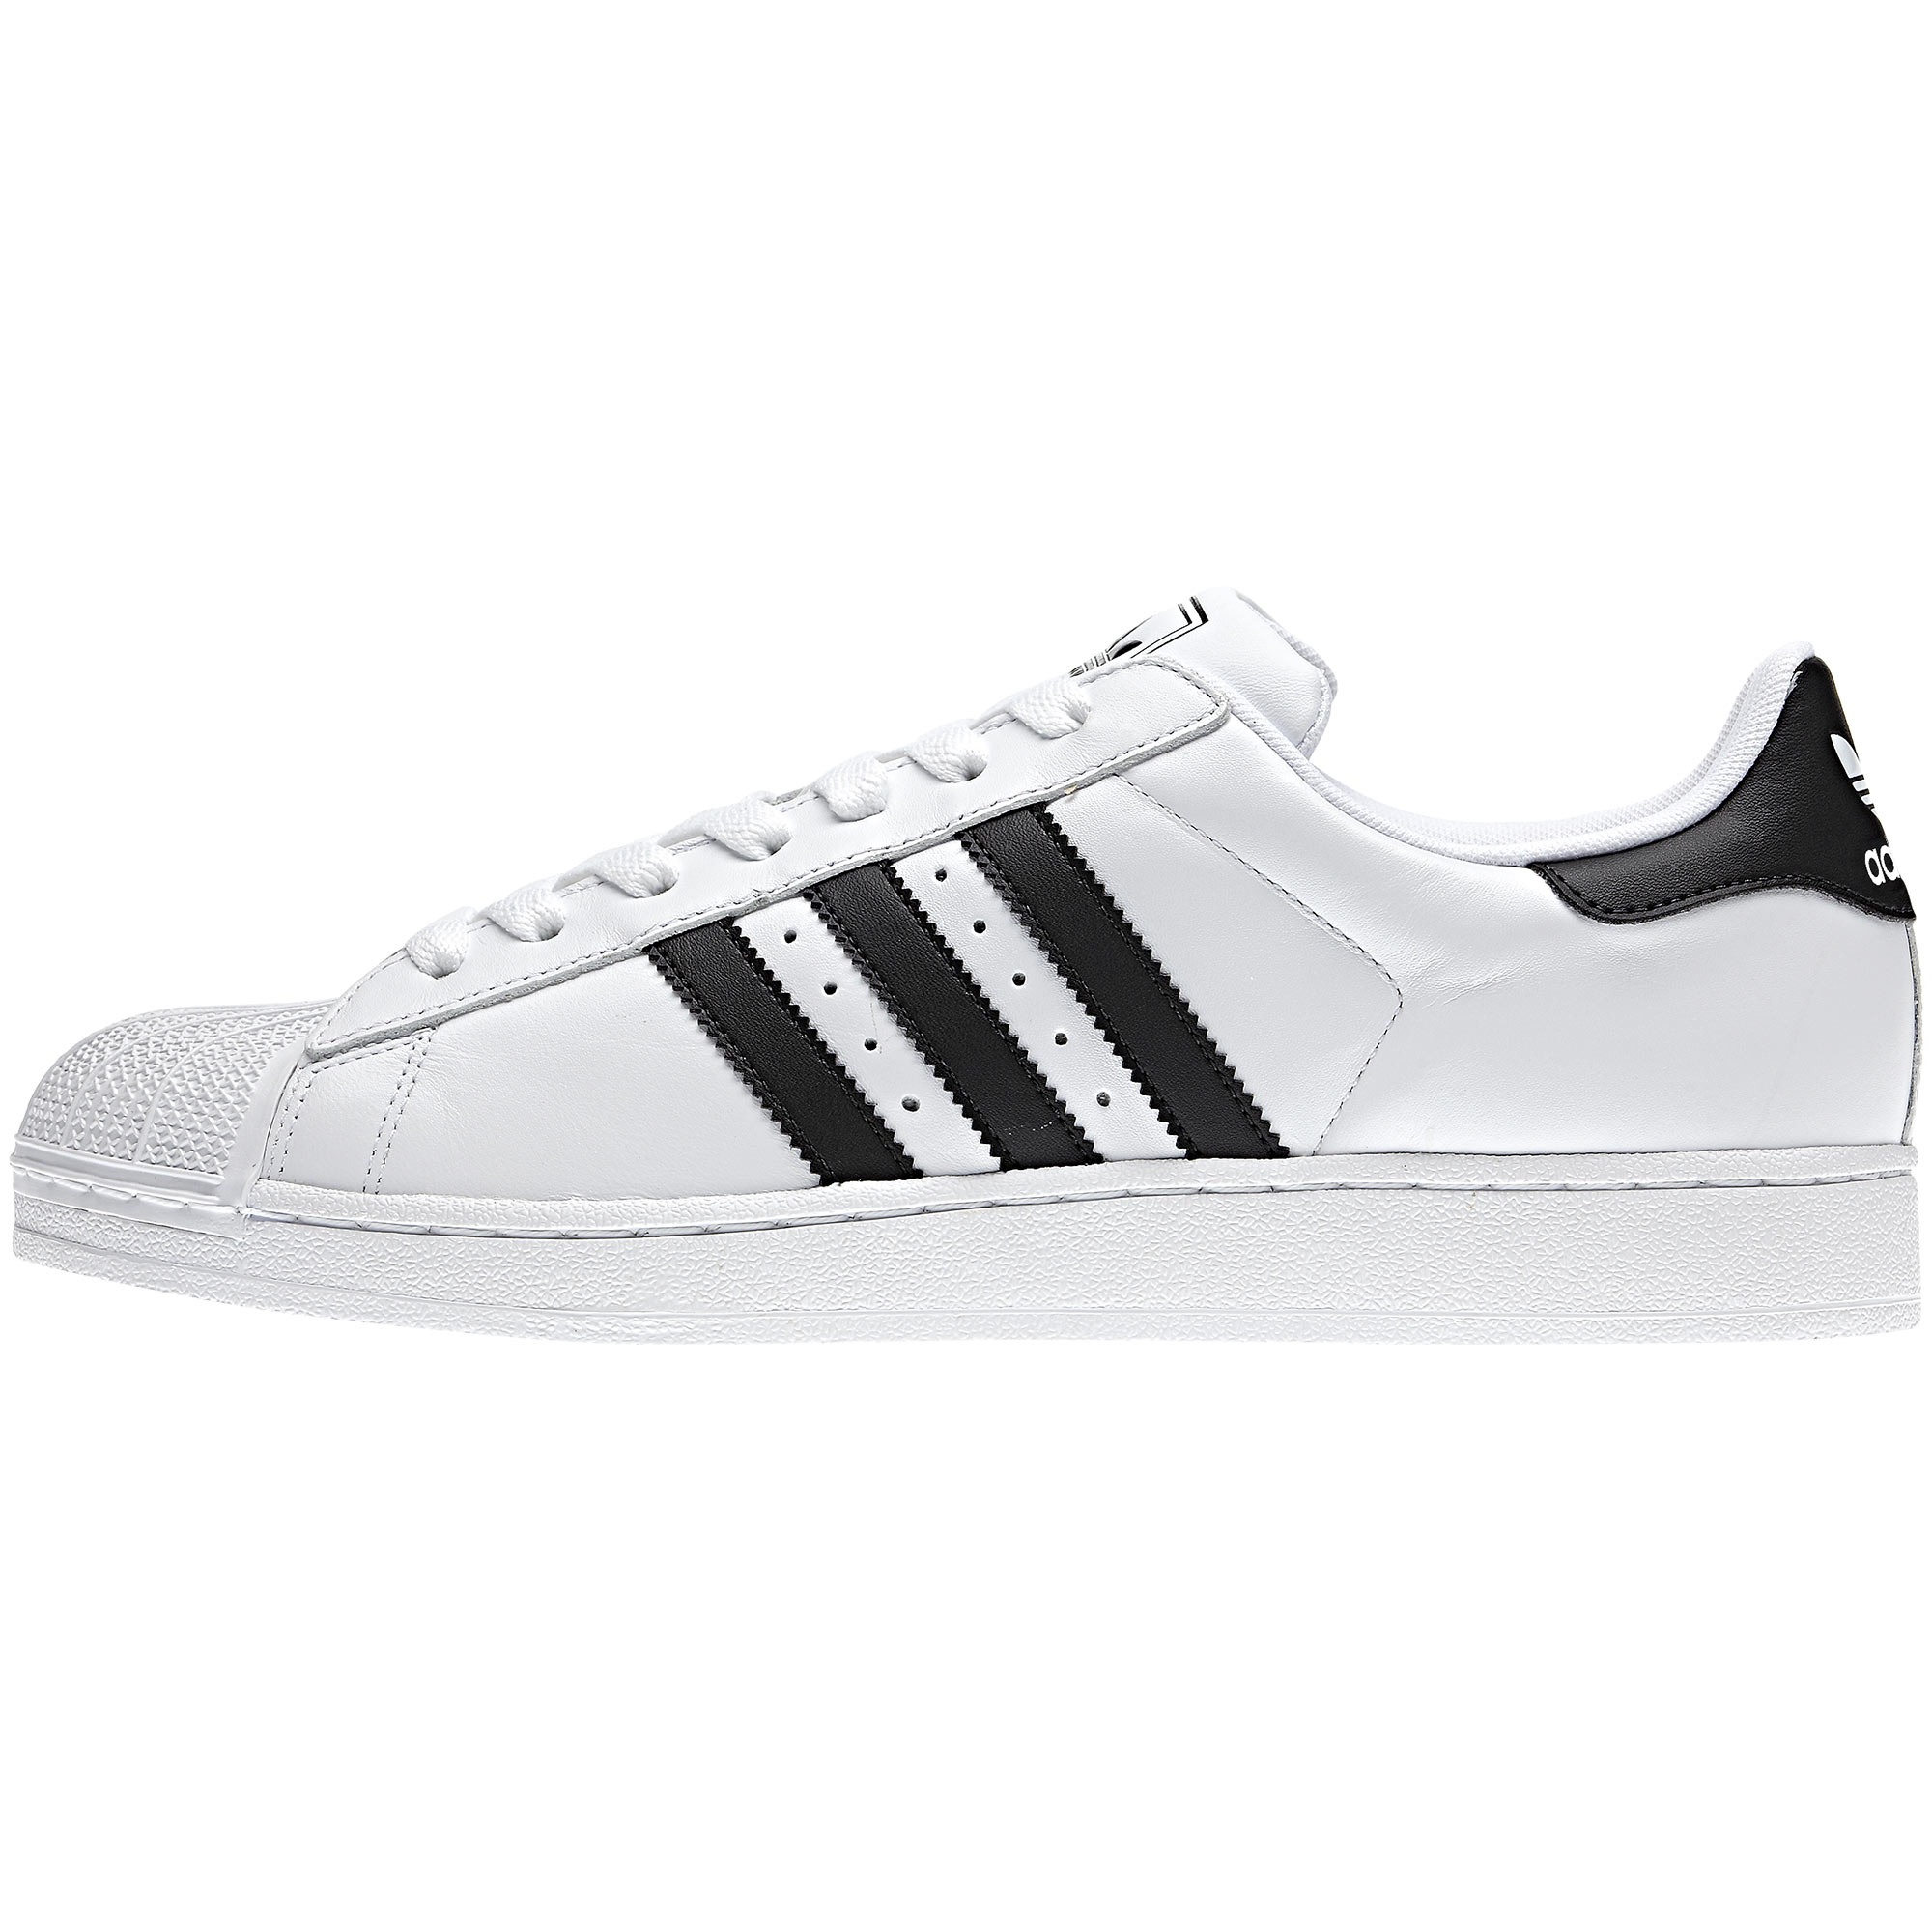 Cheap Adidas Superstar Boost PK (White & Core Black) END.